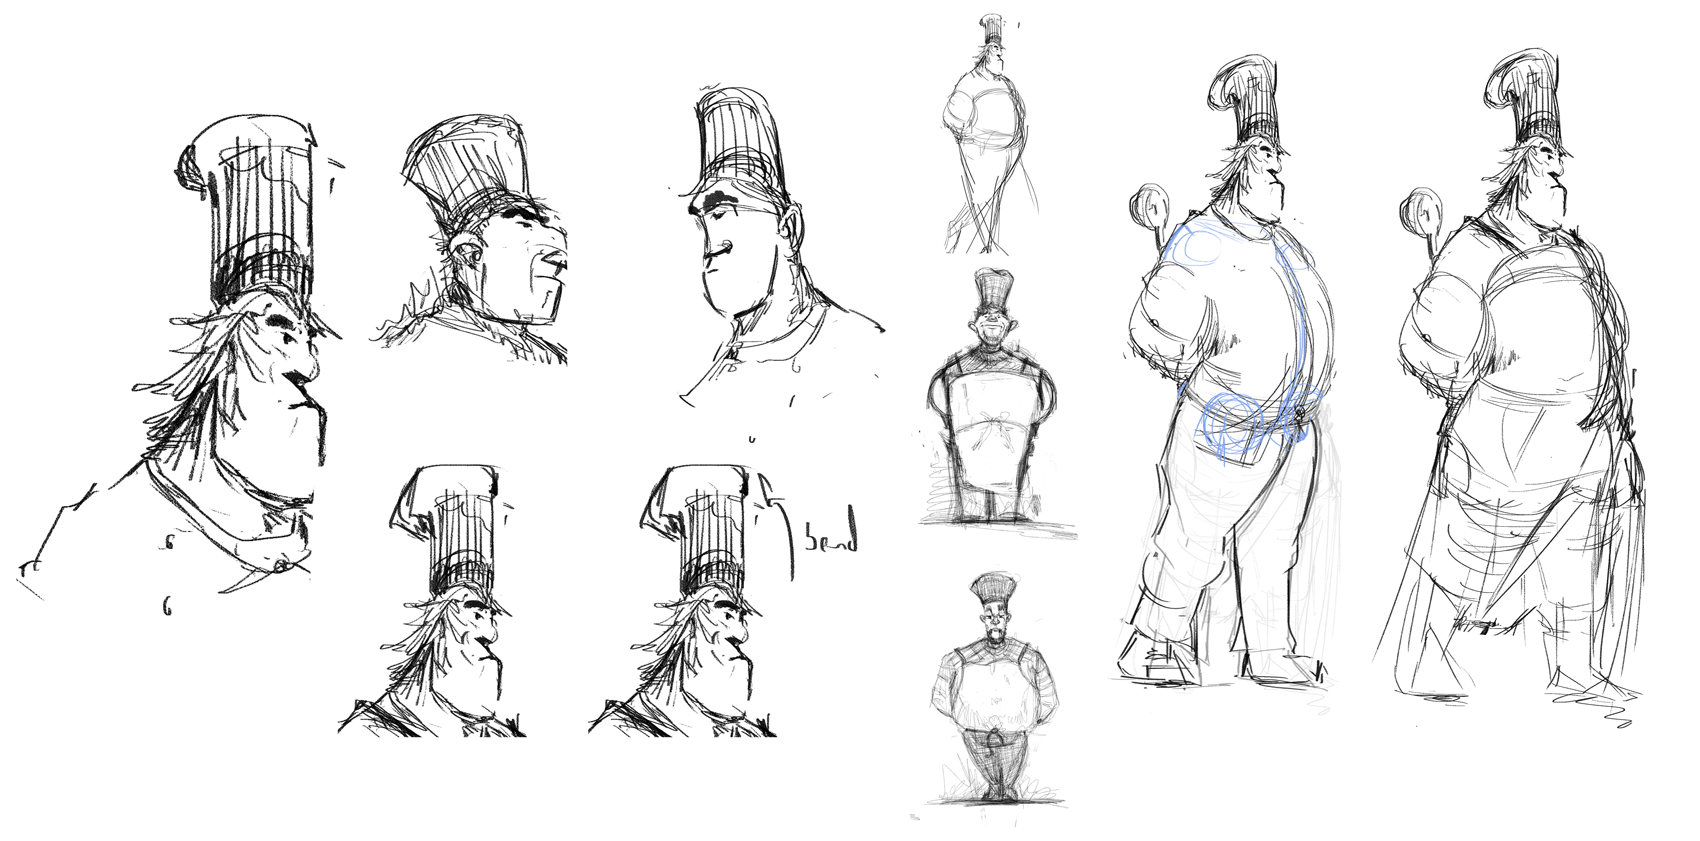 Development sketches to find a direction.